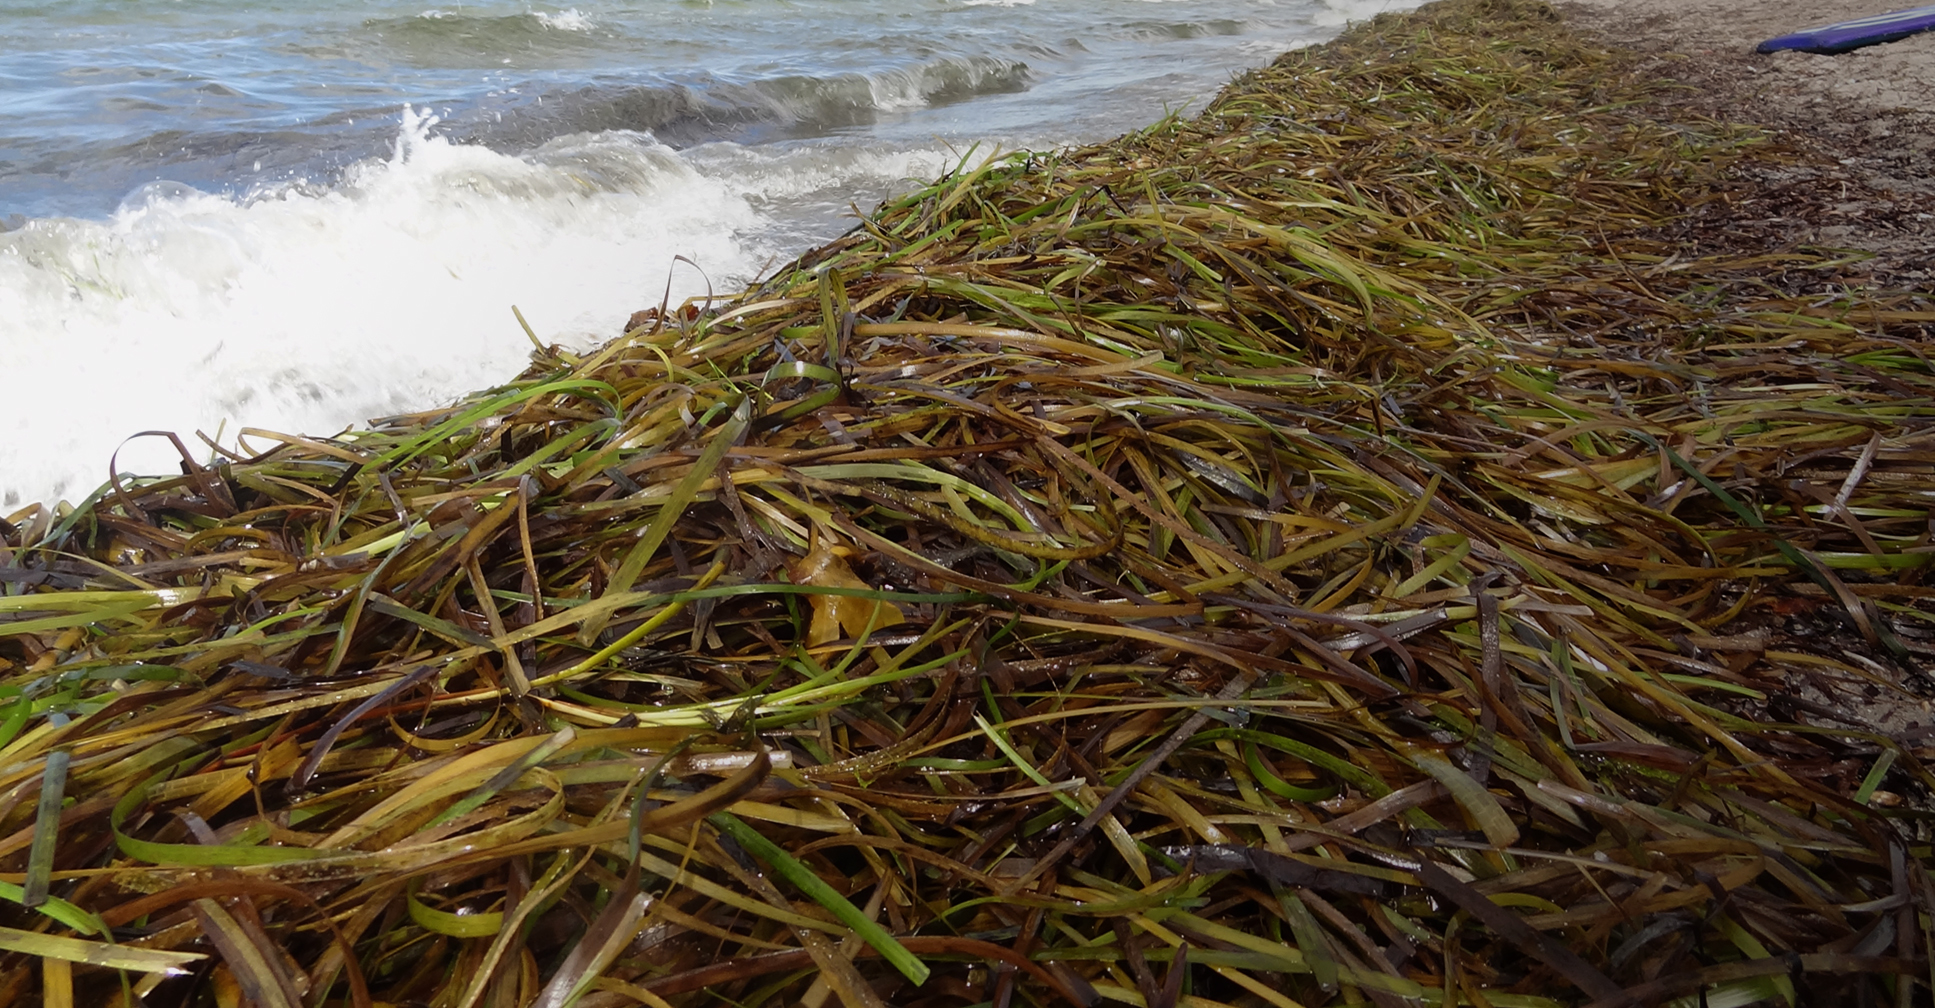 A seagrass on the sand.